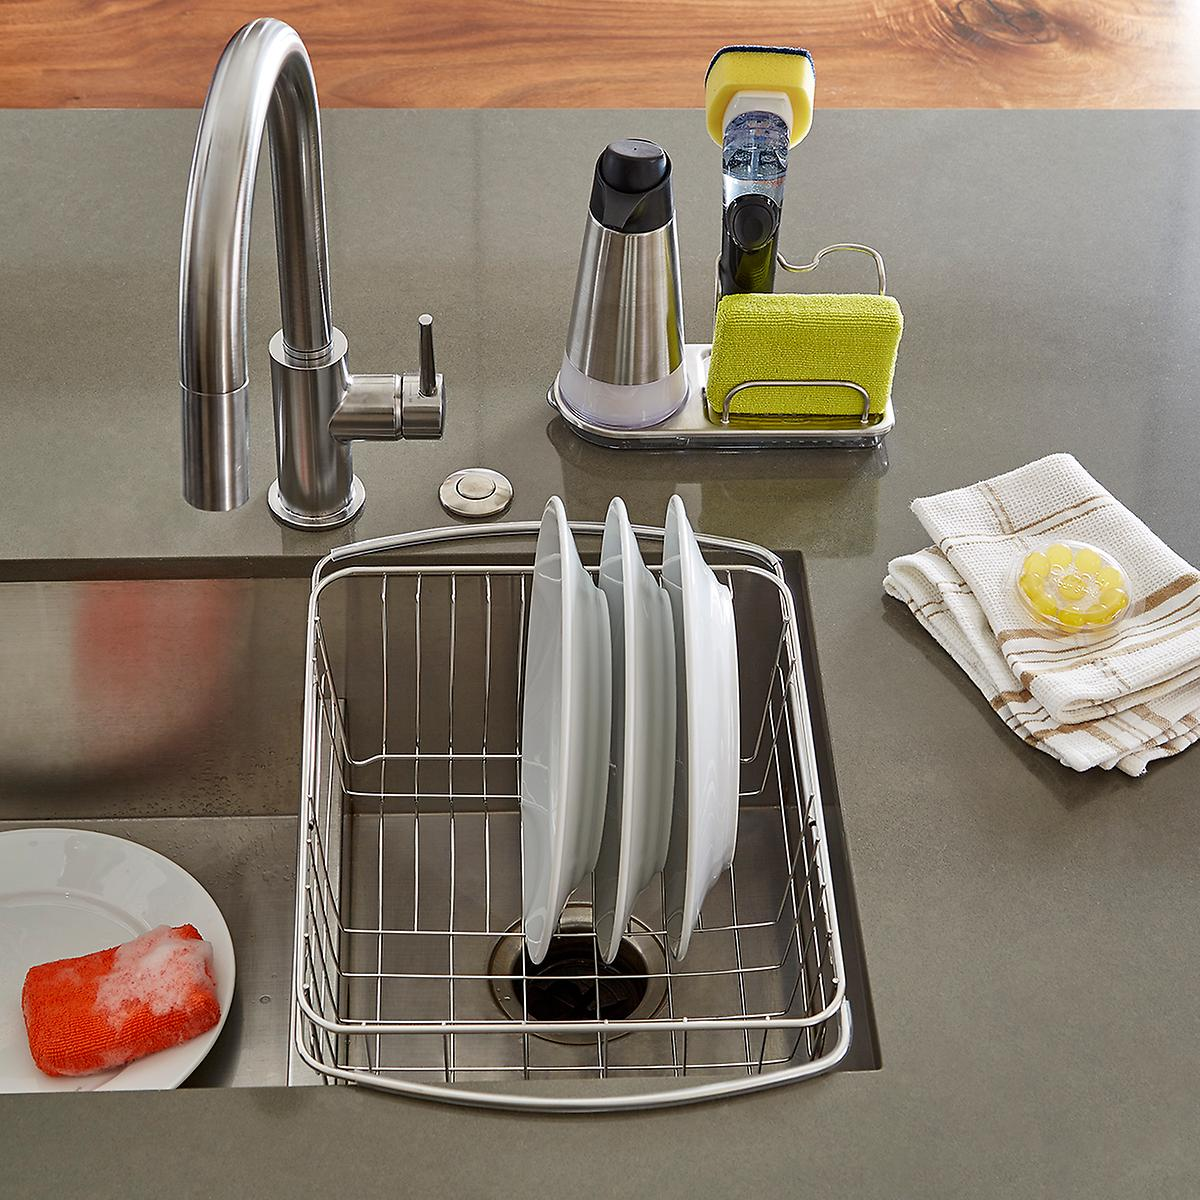 OXO Stainless Steel Pump Dispenser | The Container Store